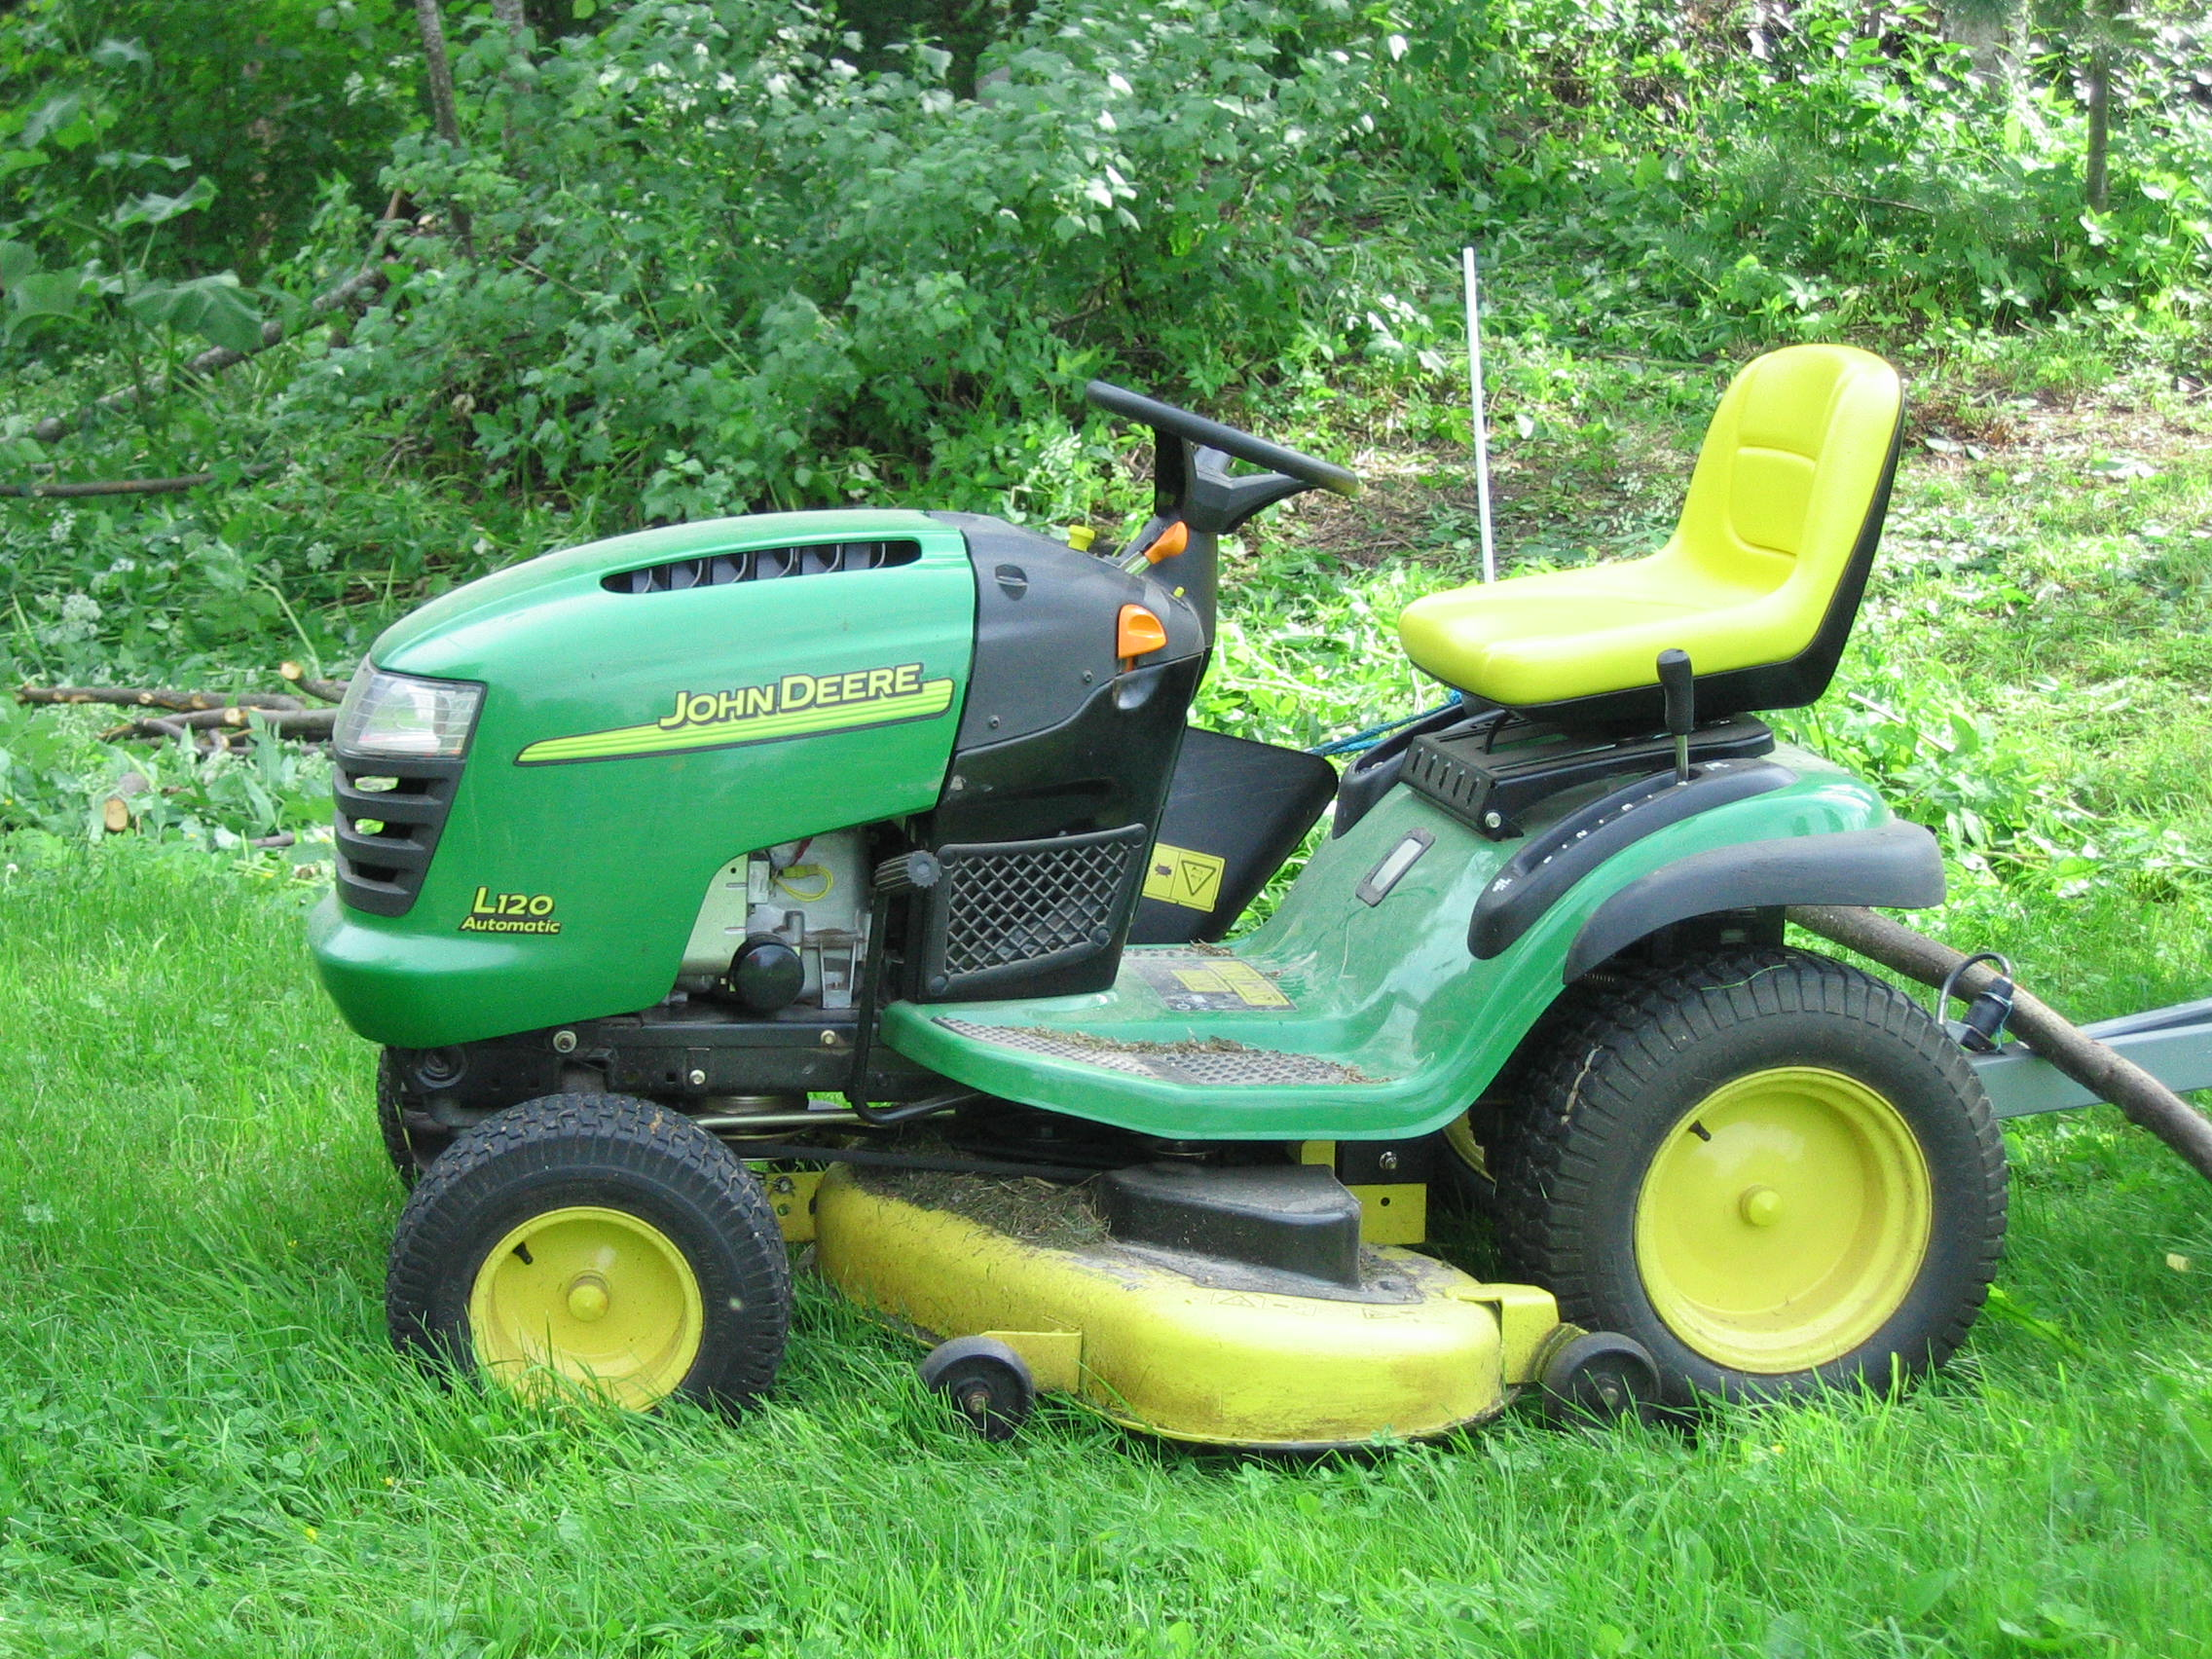 John Deere Lawn Mower Parts | Lawnmower Parts | Discount Online Parts